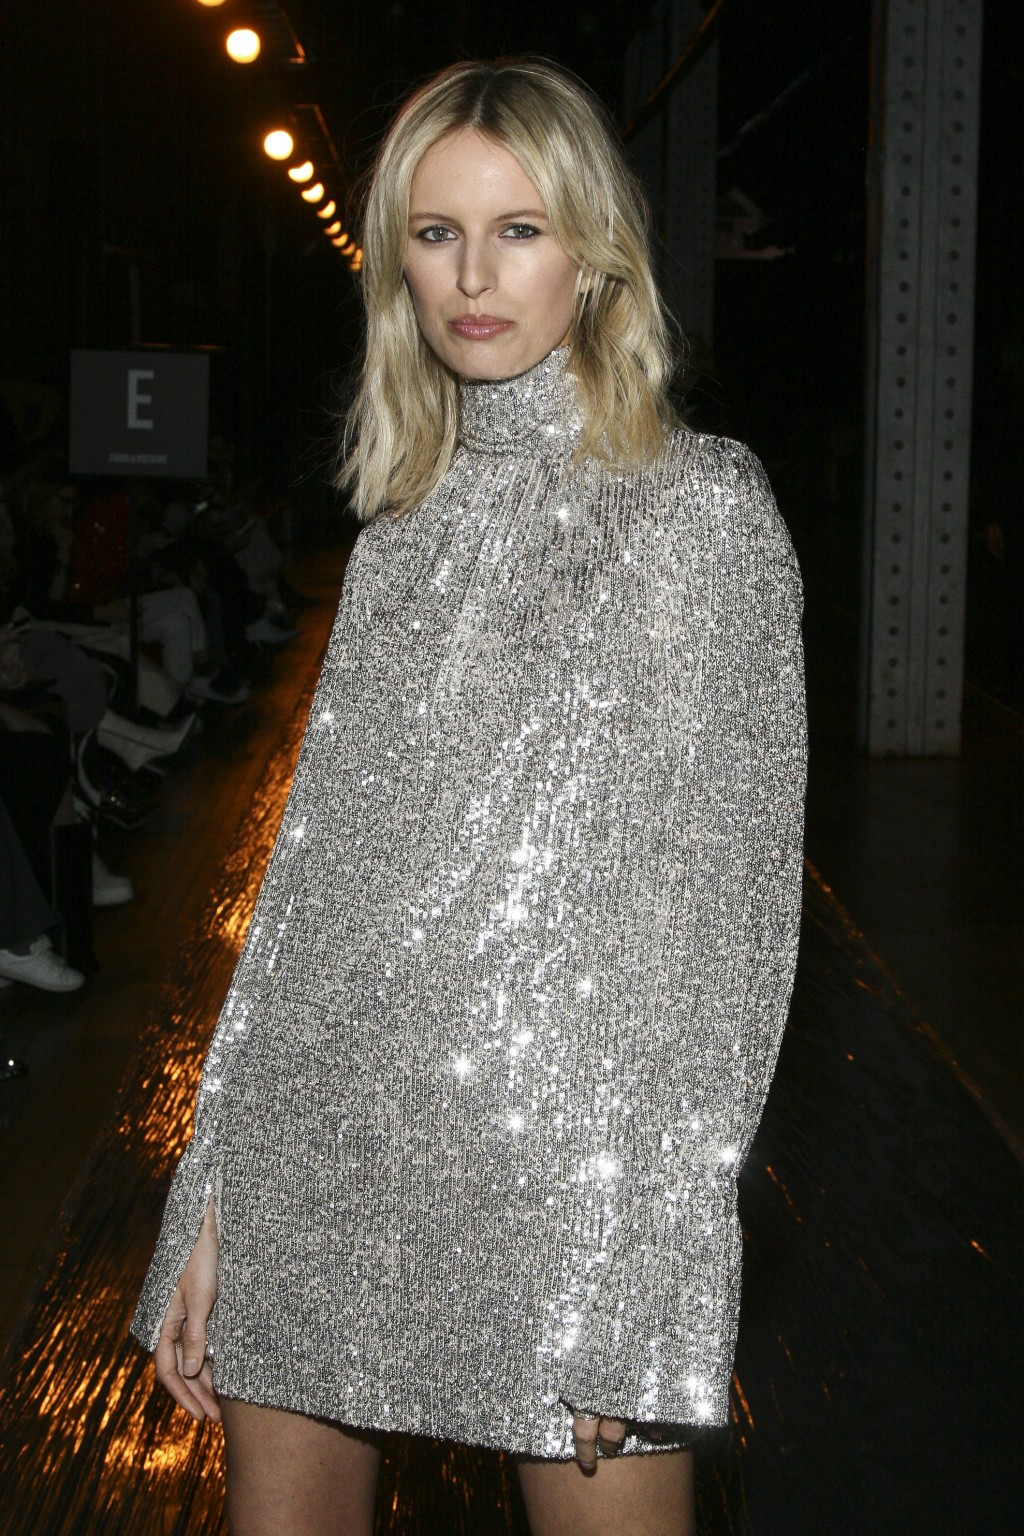 Karolina Kurkova attends the NYFW Fall/Winter 2019 Zadig & Voltaire fashion show at The Tunnel on Monday, Feb. 11, 2019, in New York. (Photo by Andy K